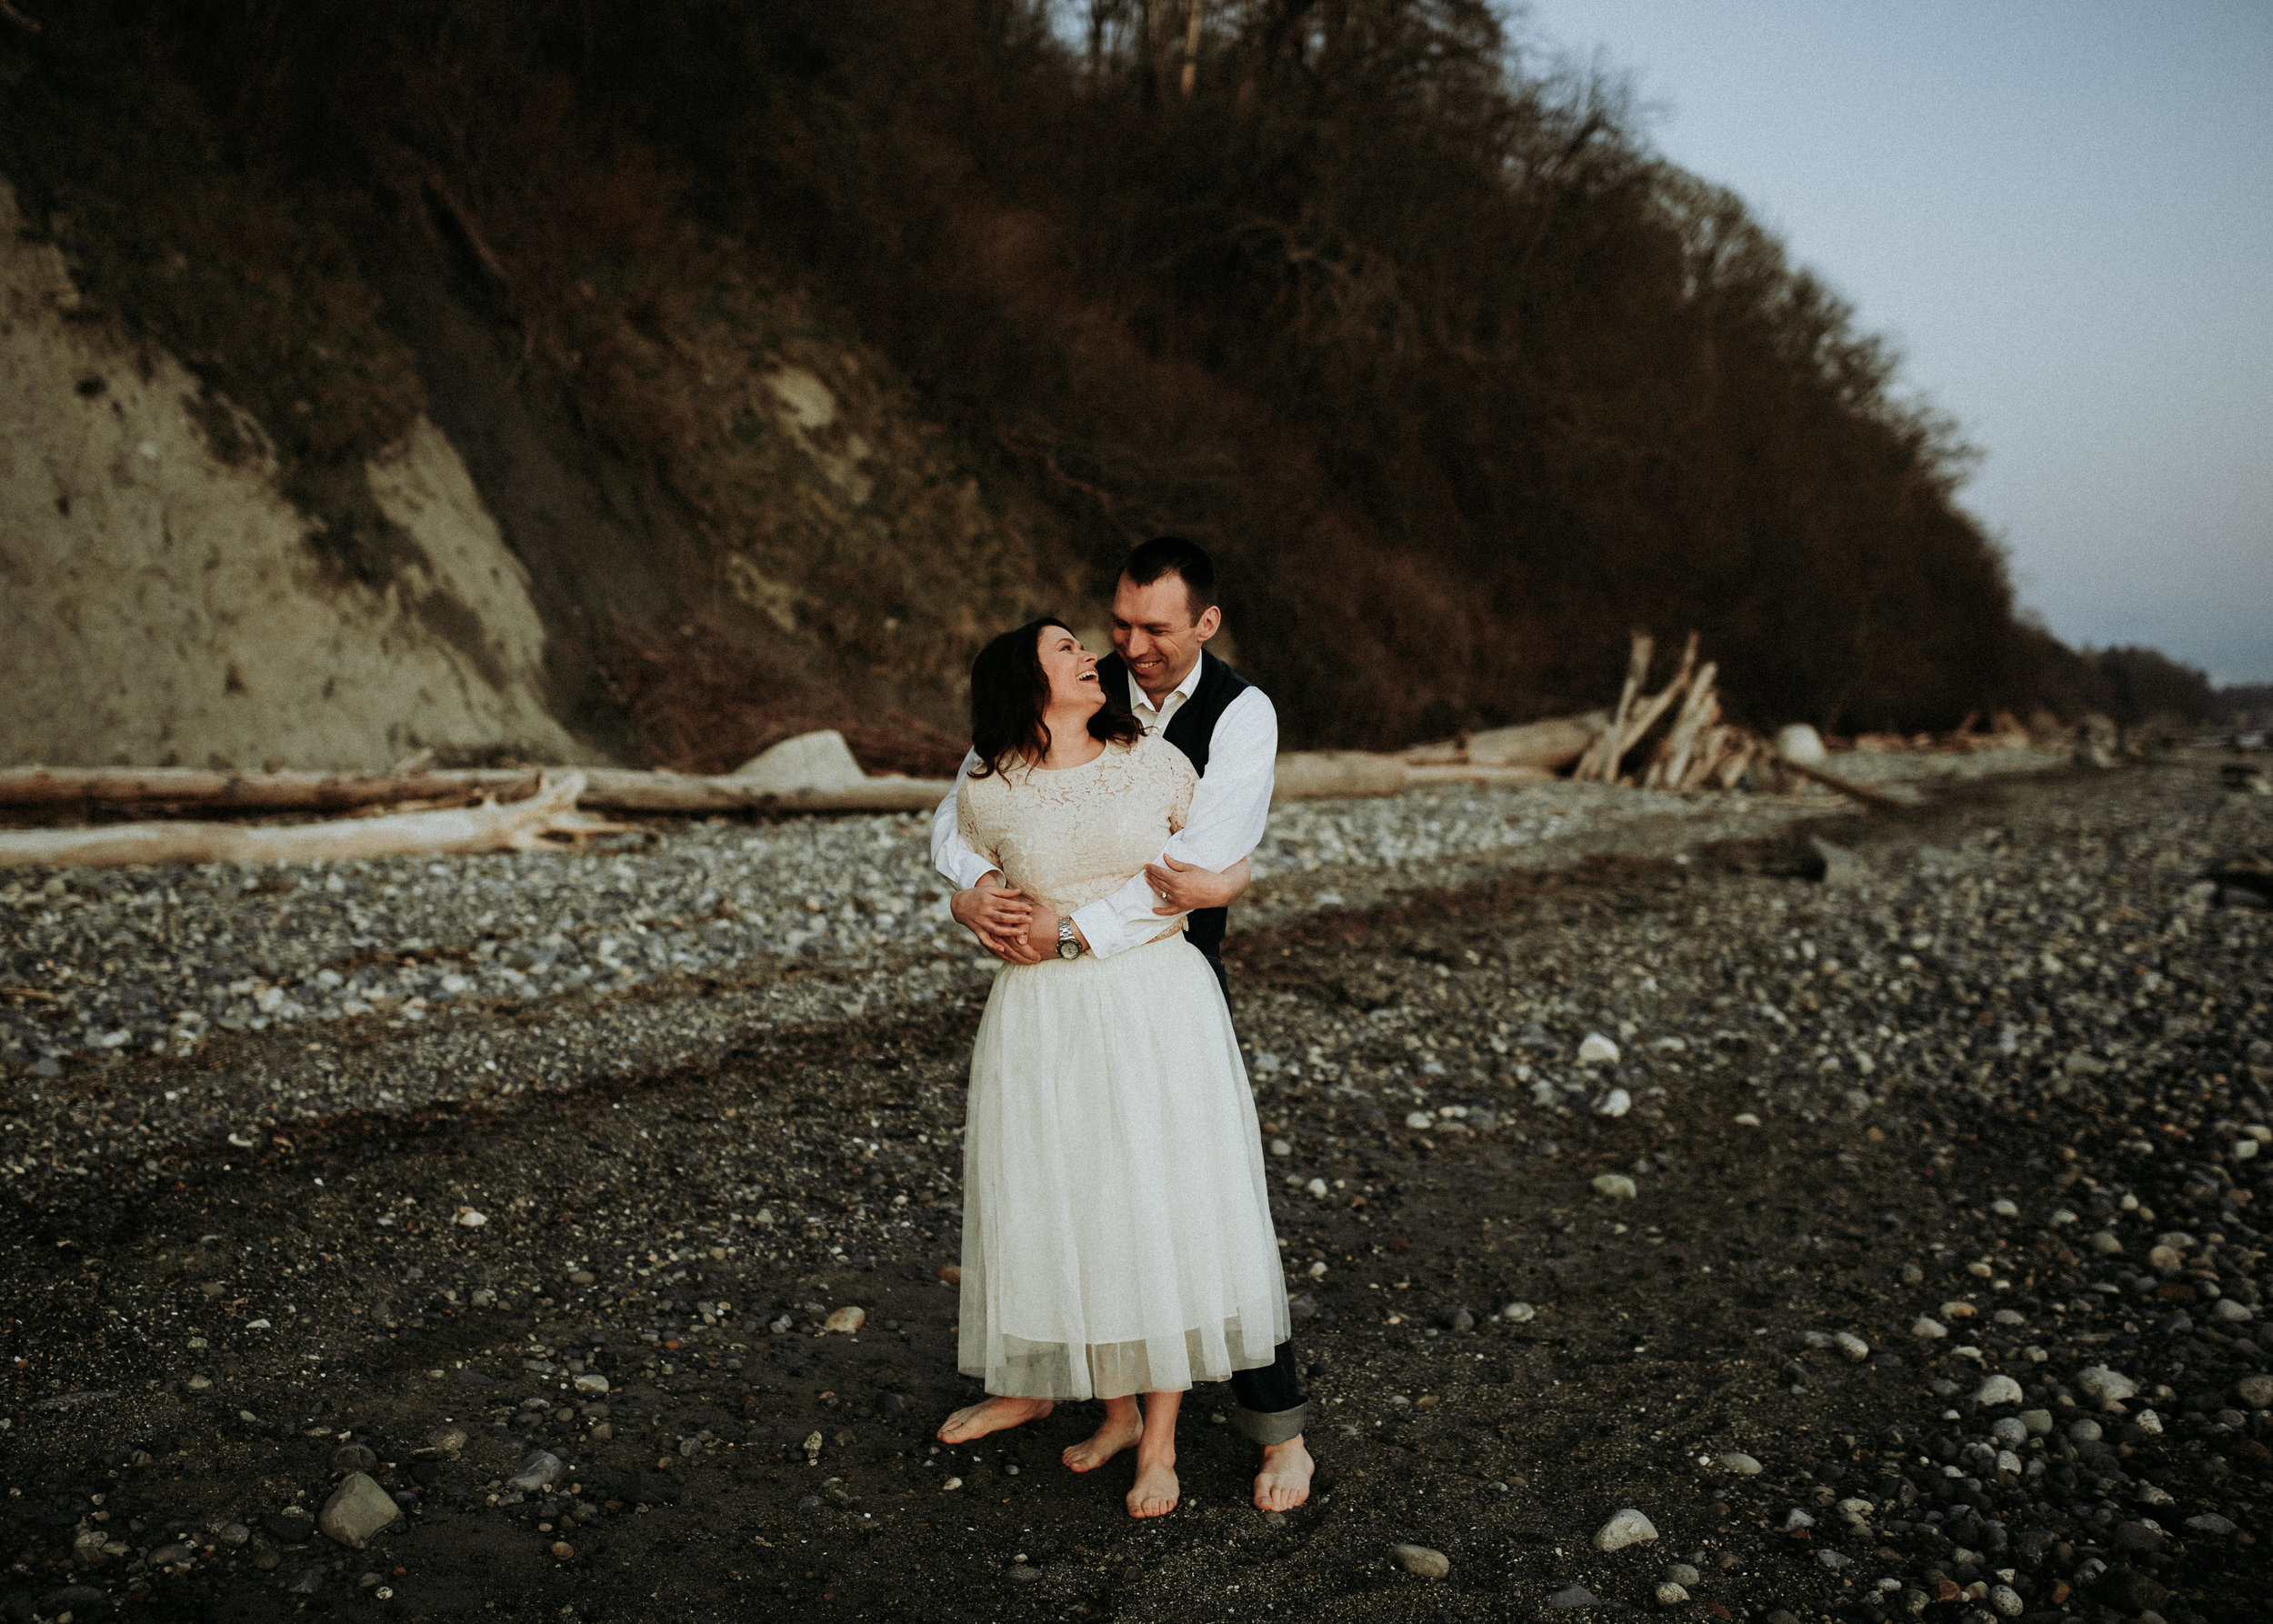 Engagement-Photographer-Bellingham-WA-Brianne-Bell-Photograpy-(Coral)-6.jpg